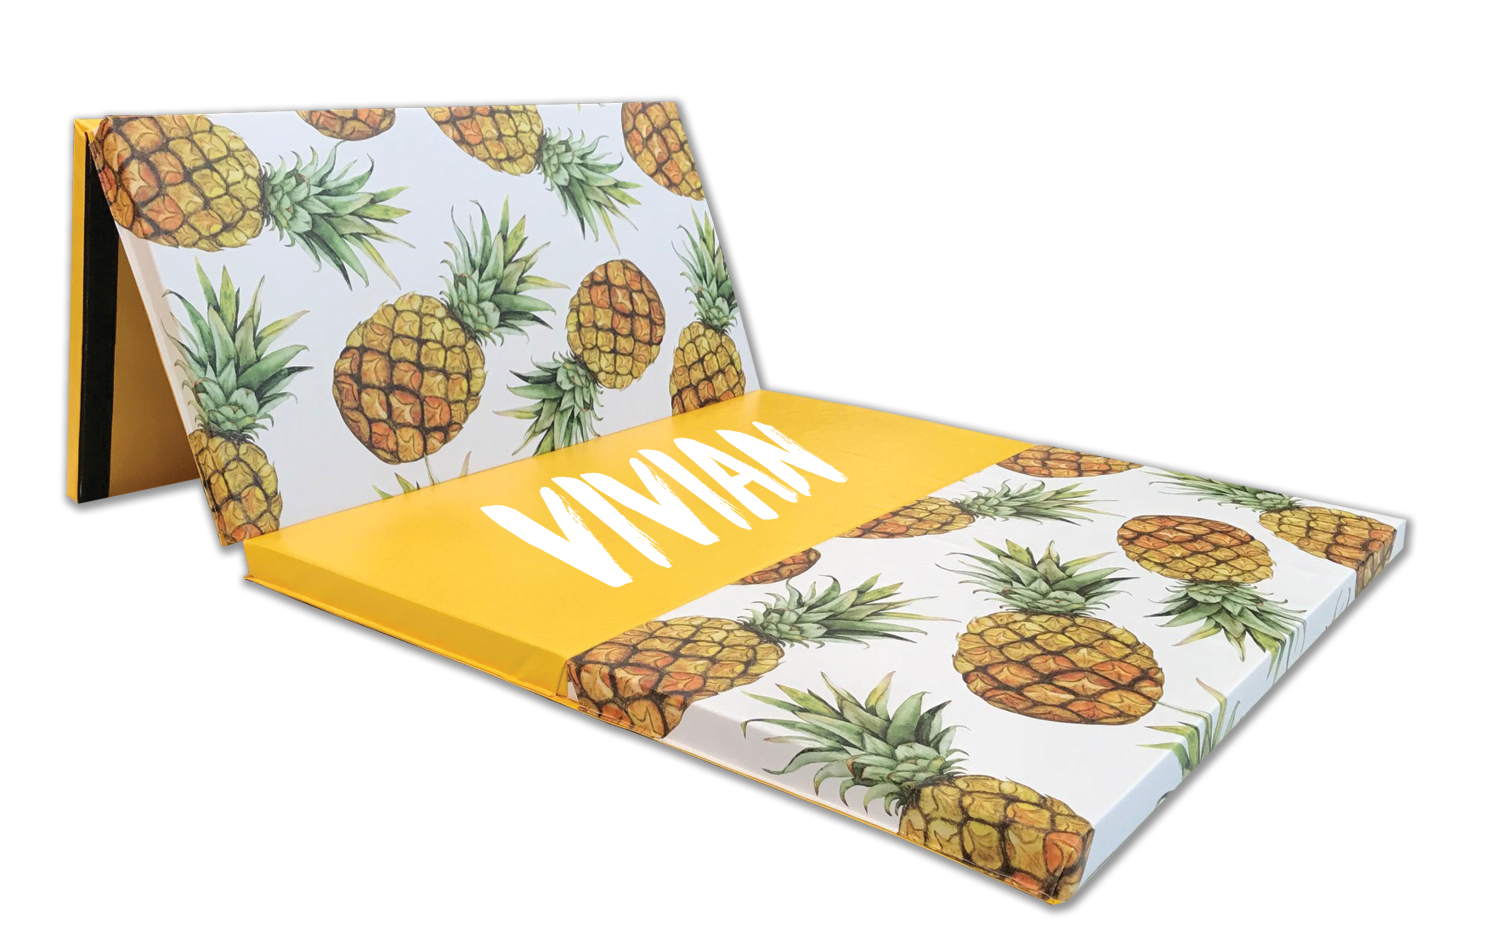 Pineapple 4' x 8' Folding Gymnastics Mat